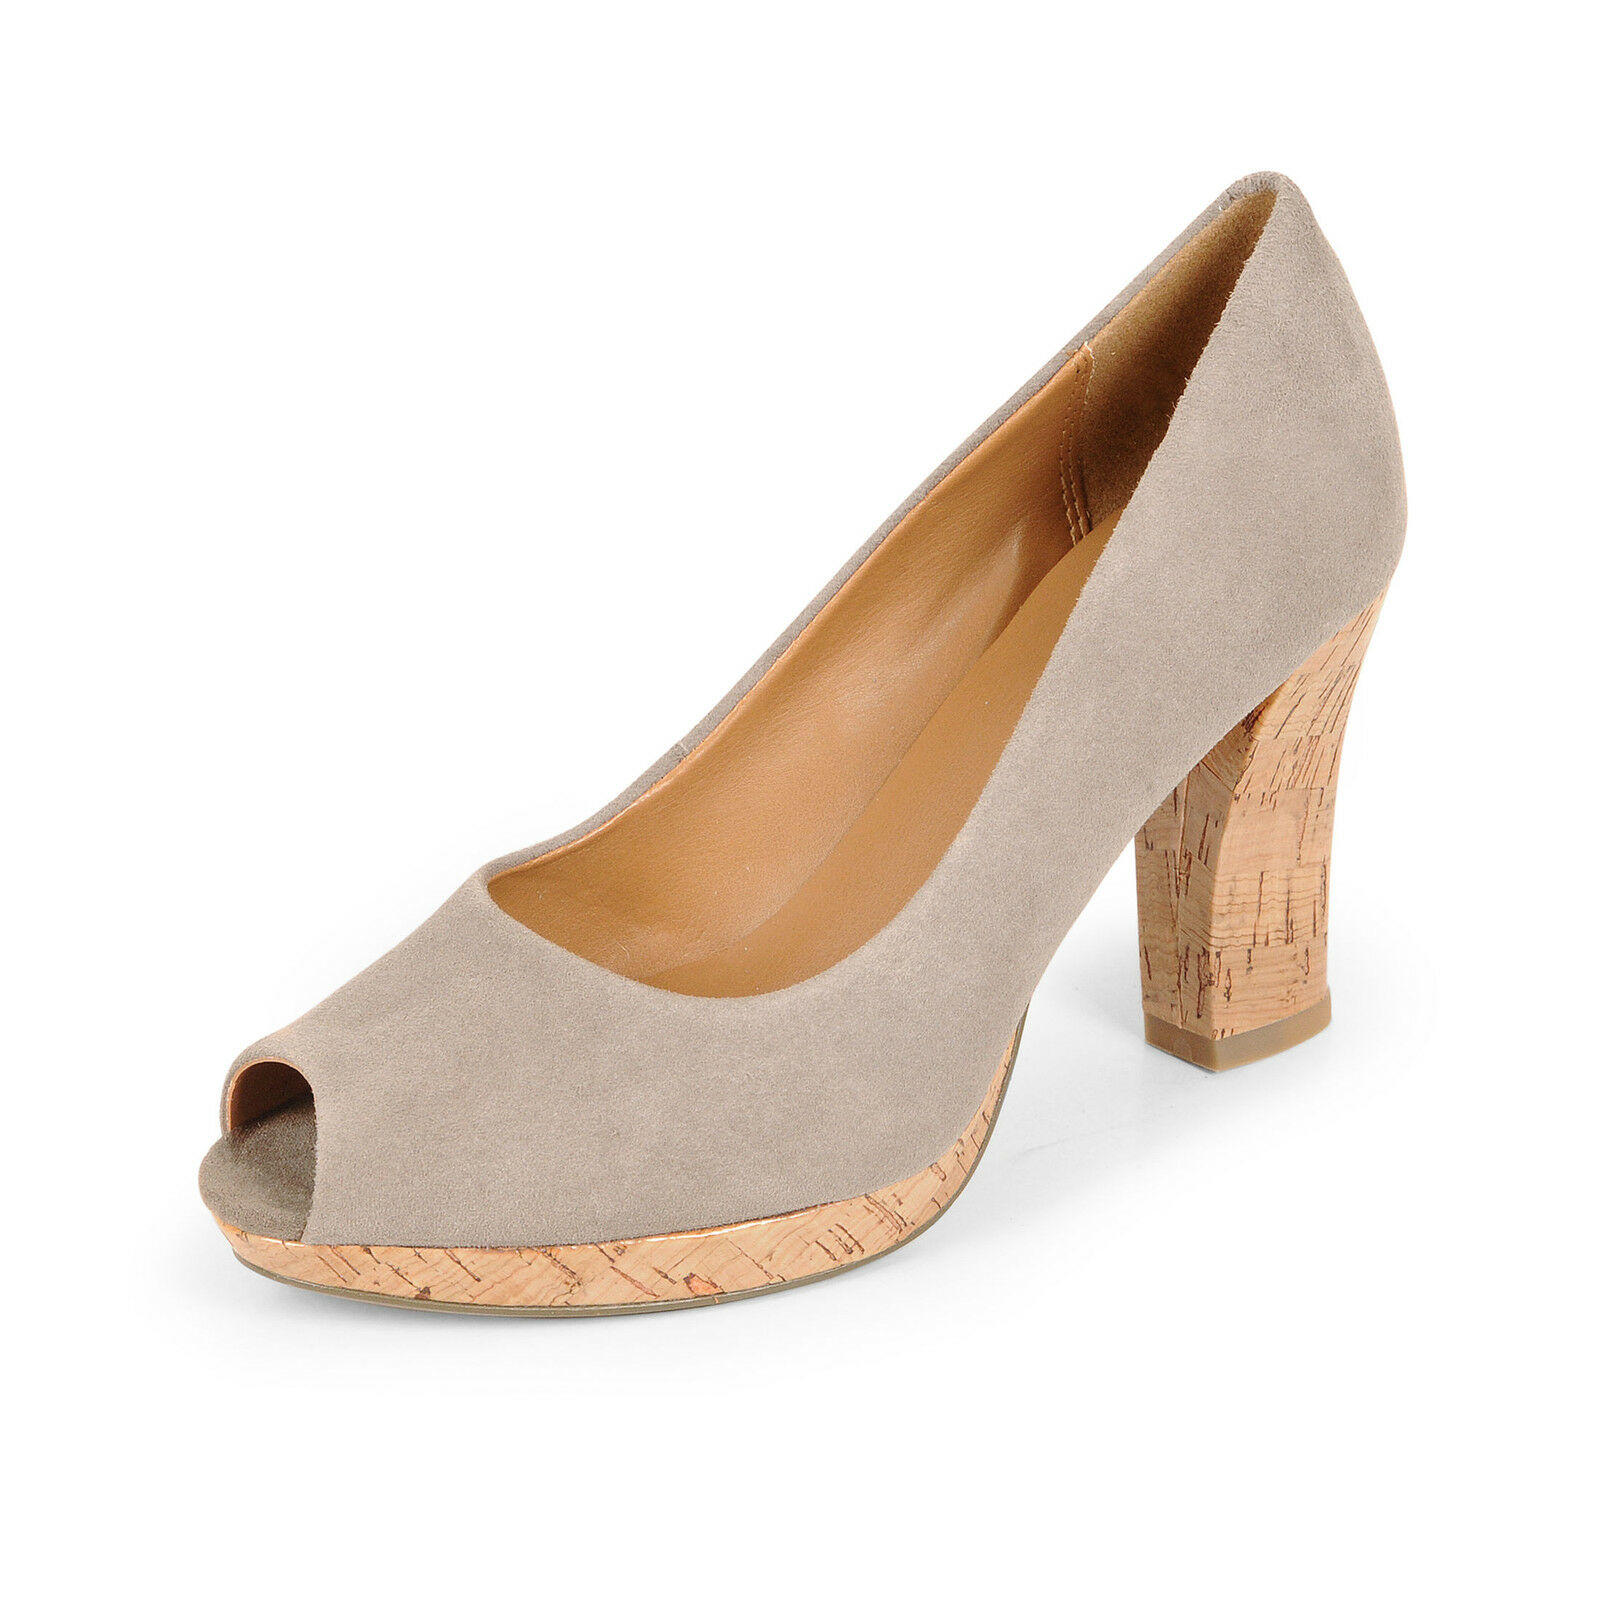 Peeptoes Adina Kendra vogue Taille 41 - (203544754, Taille 7)